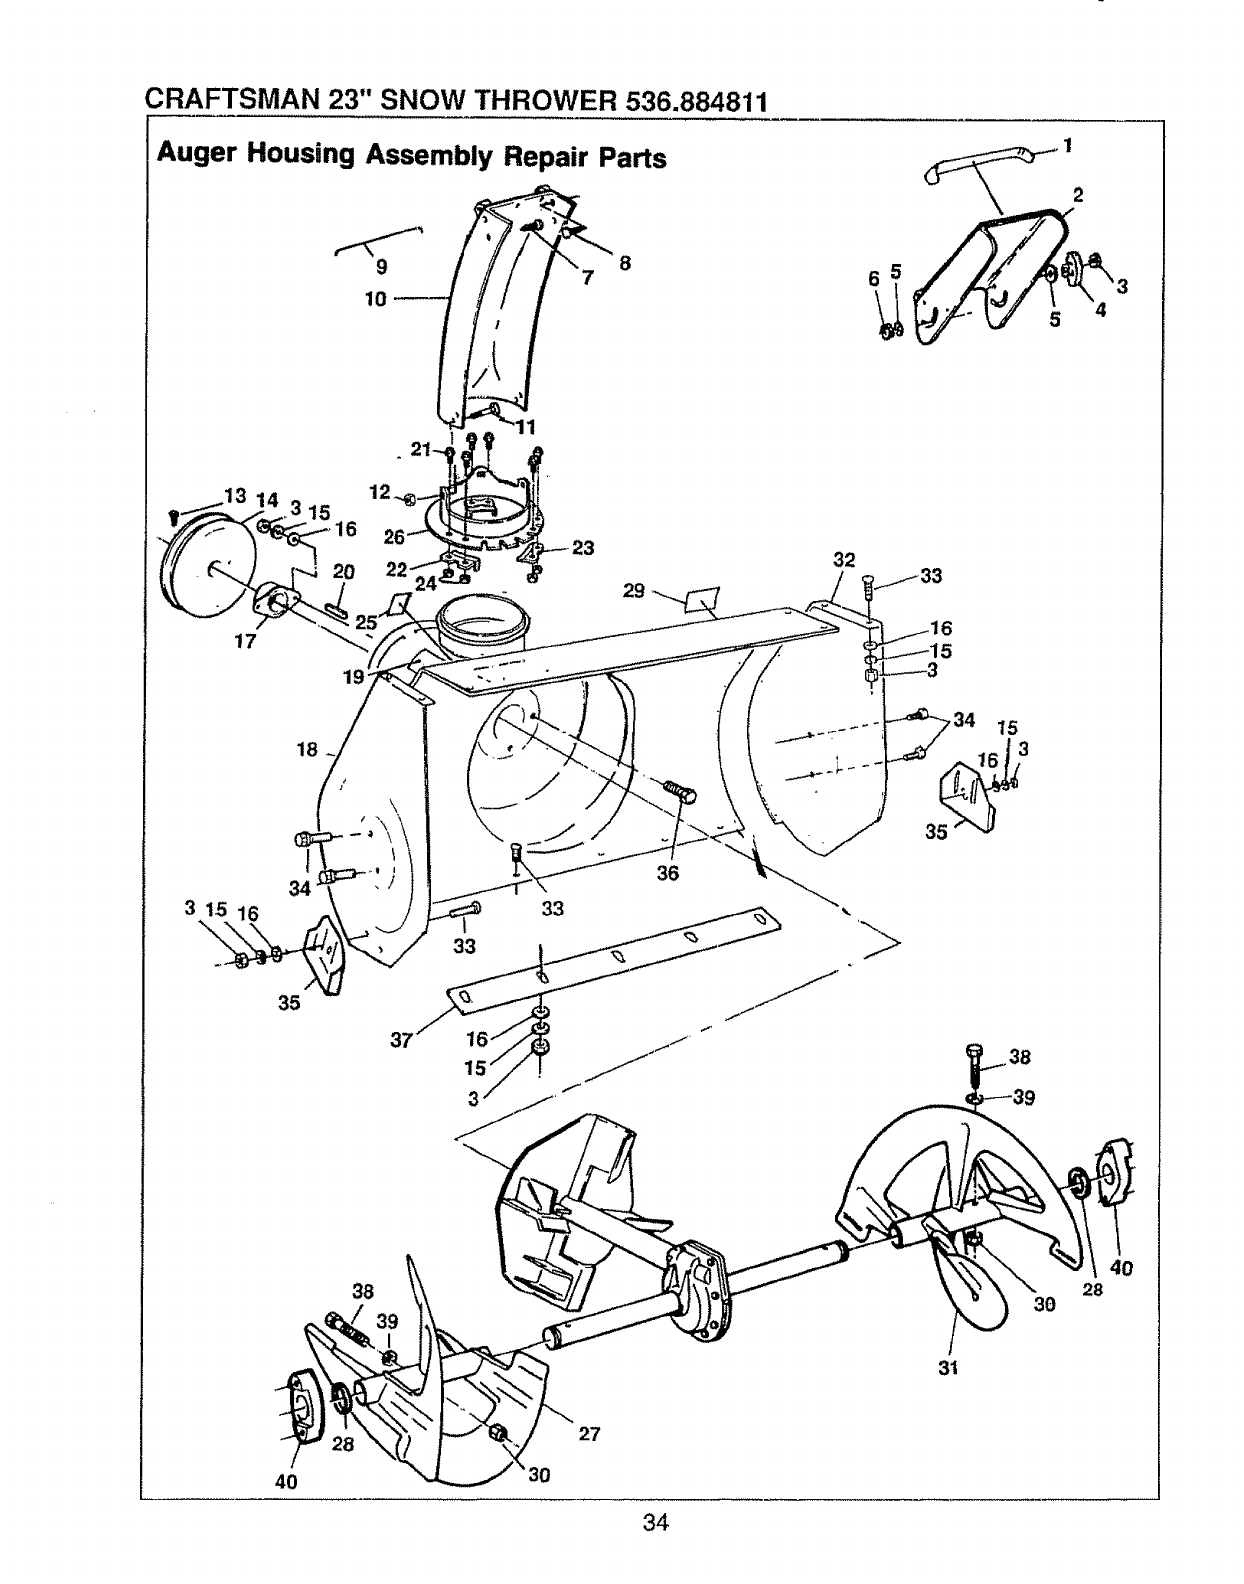 Page 34 of Sears Snow Blower 536.884811 User Guide